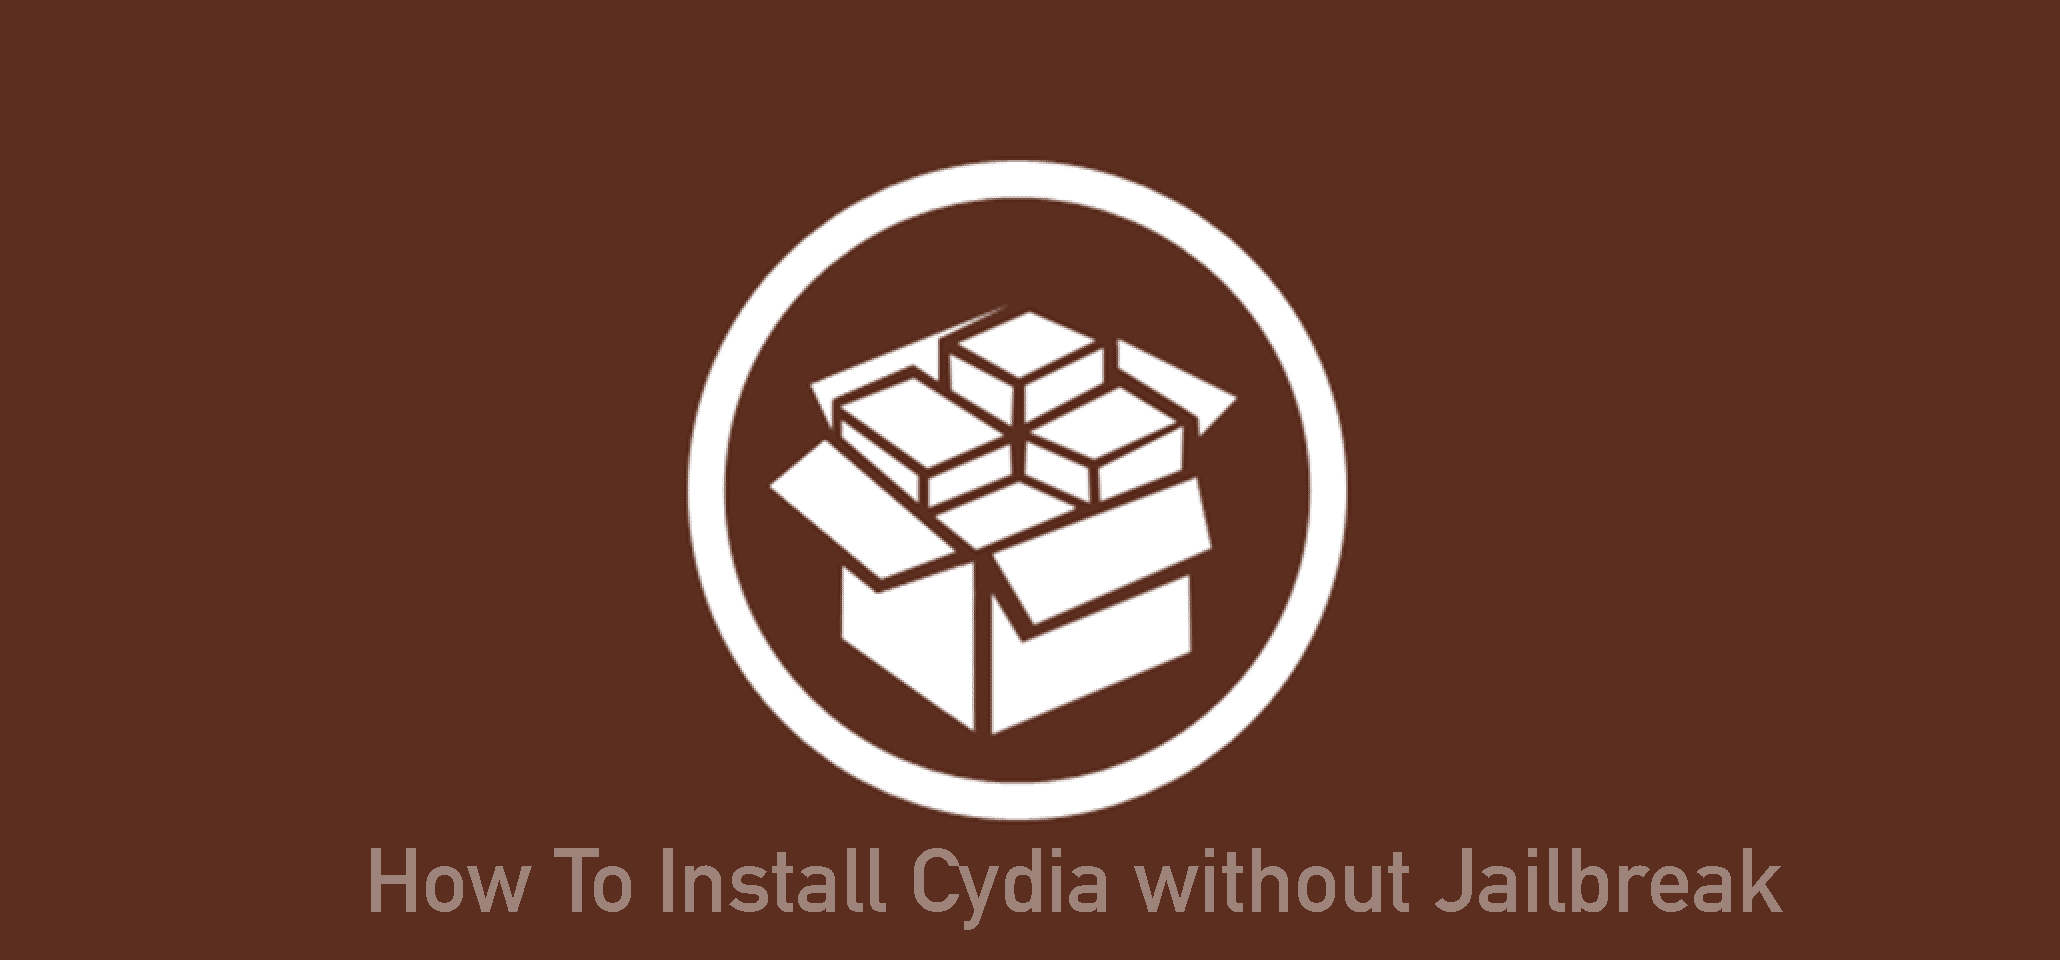 How To Install Cydia without Jailbreak (Updated)